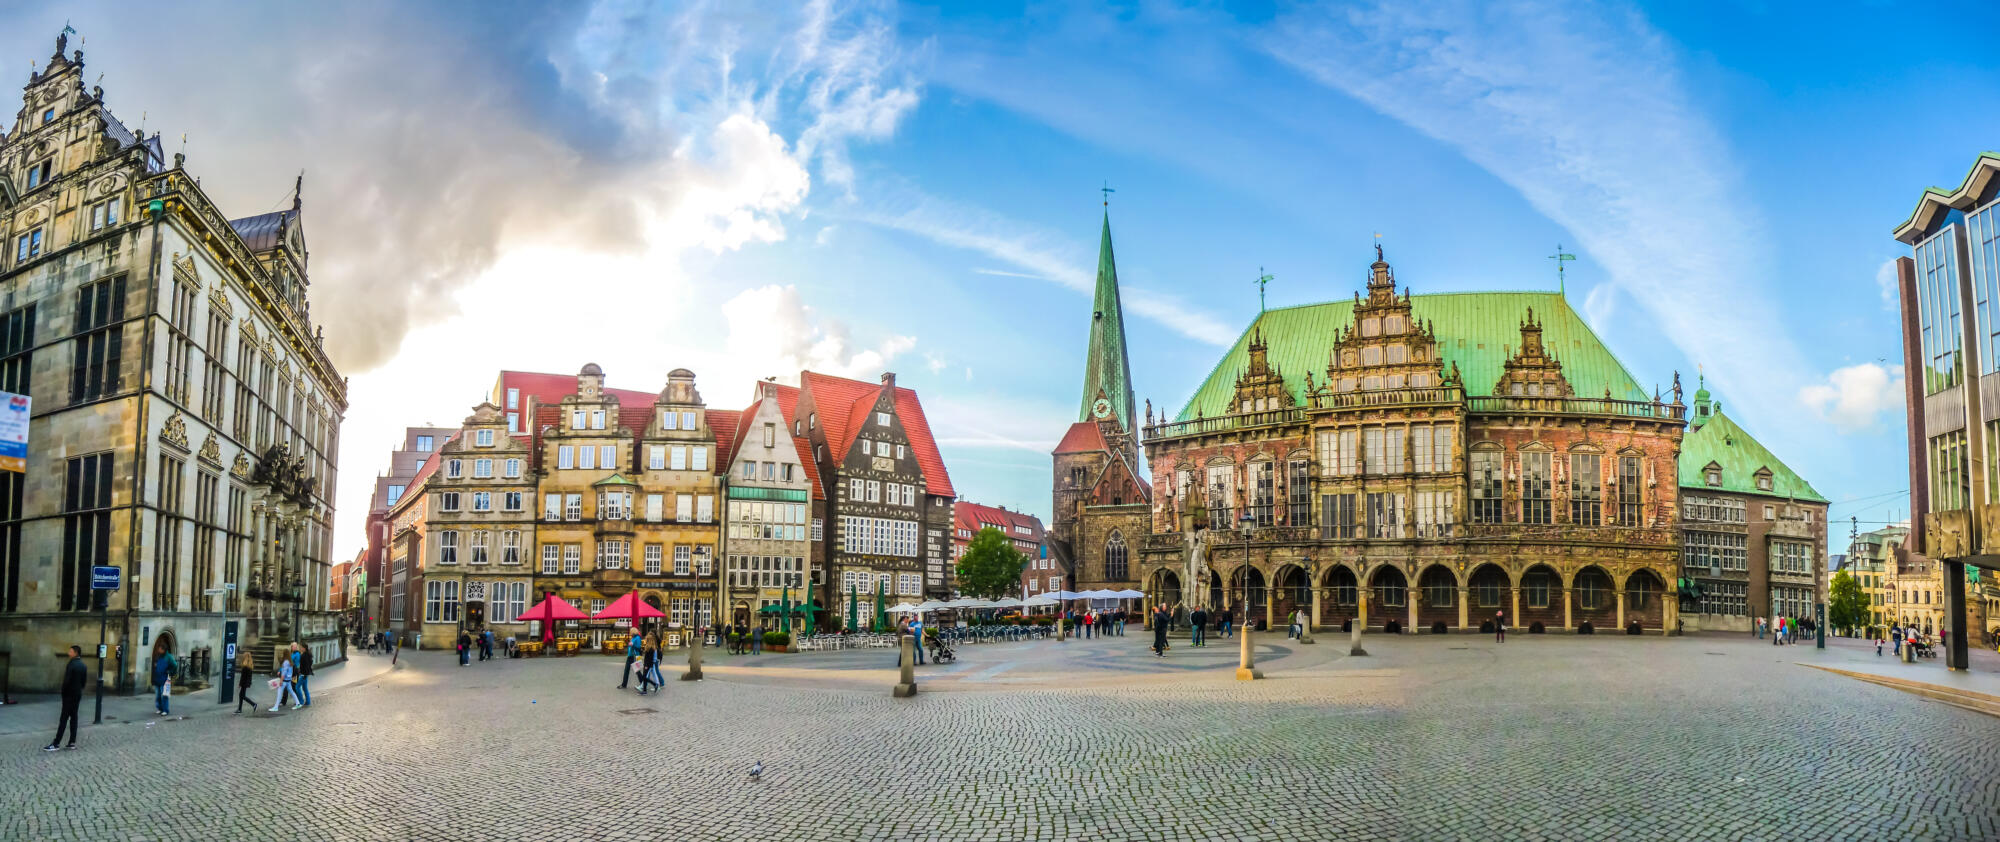 SUNRISE Bremen: Street Space Management – Key for mobility and quality of life